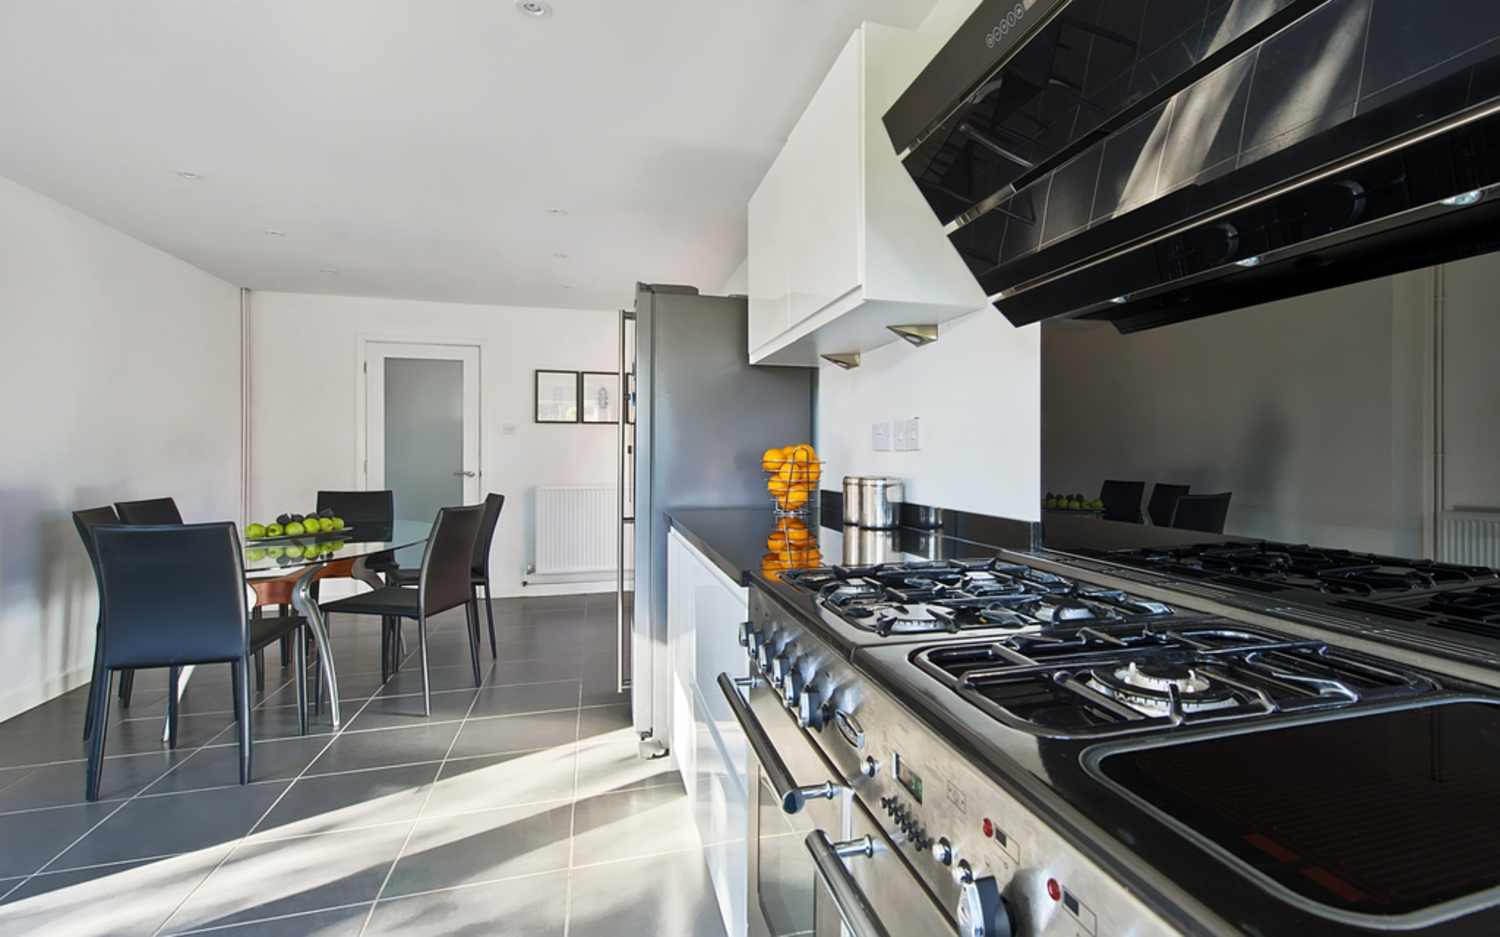 Kitchen appliances worktop of a house extension by Harvey Norman Architects Cambridge